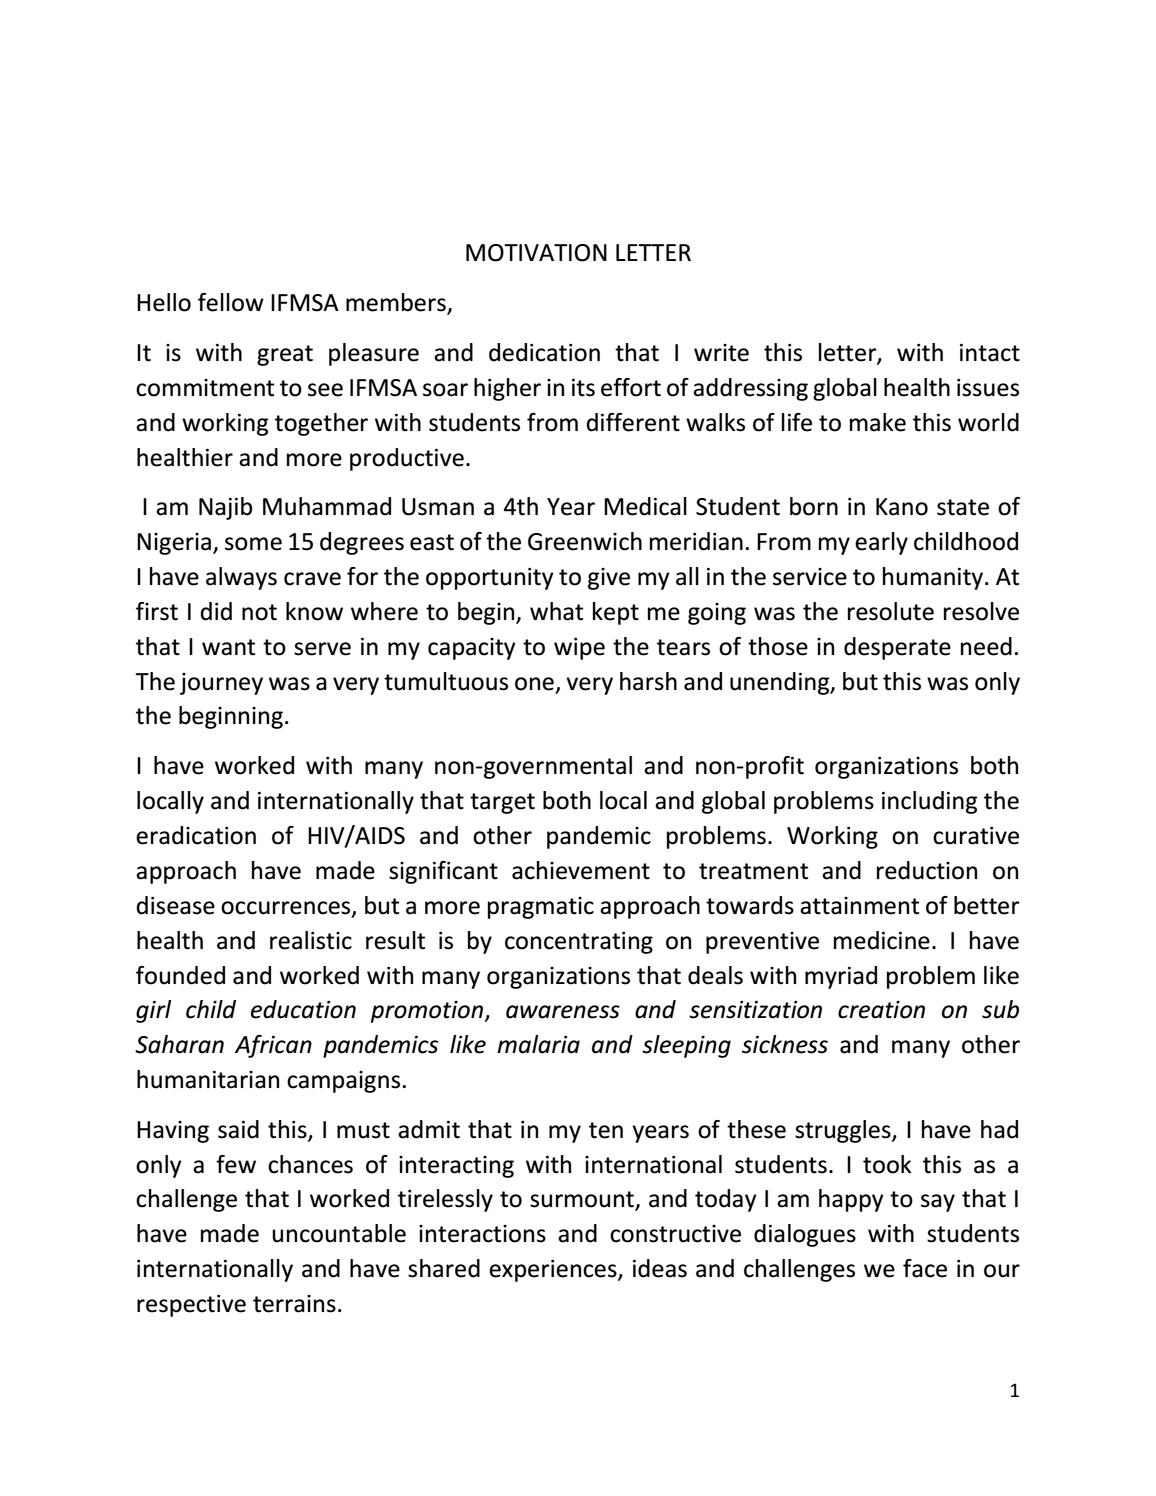 letter of motivation ifmsa motivation letter by najib usman issuu 39169